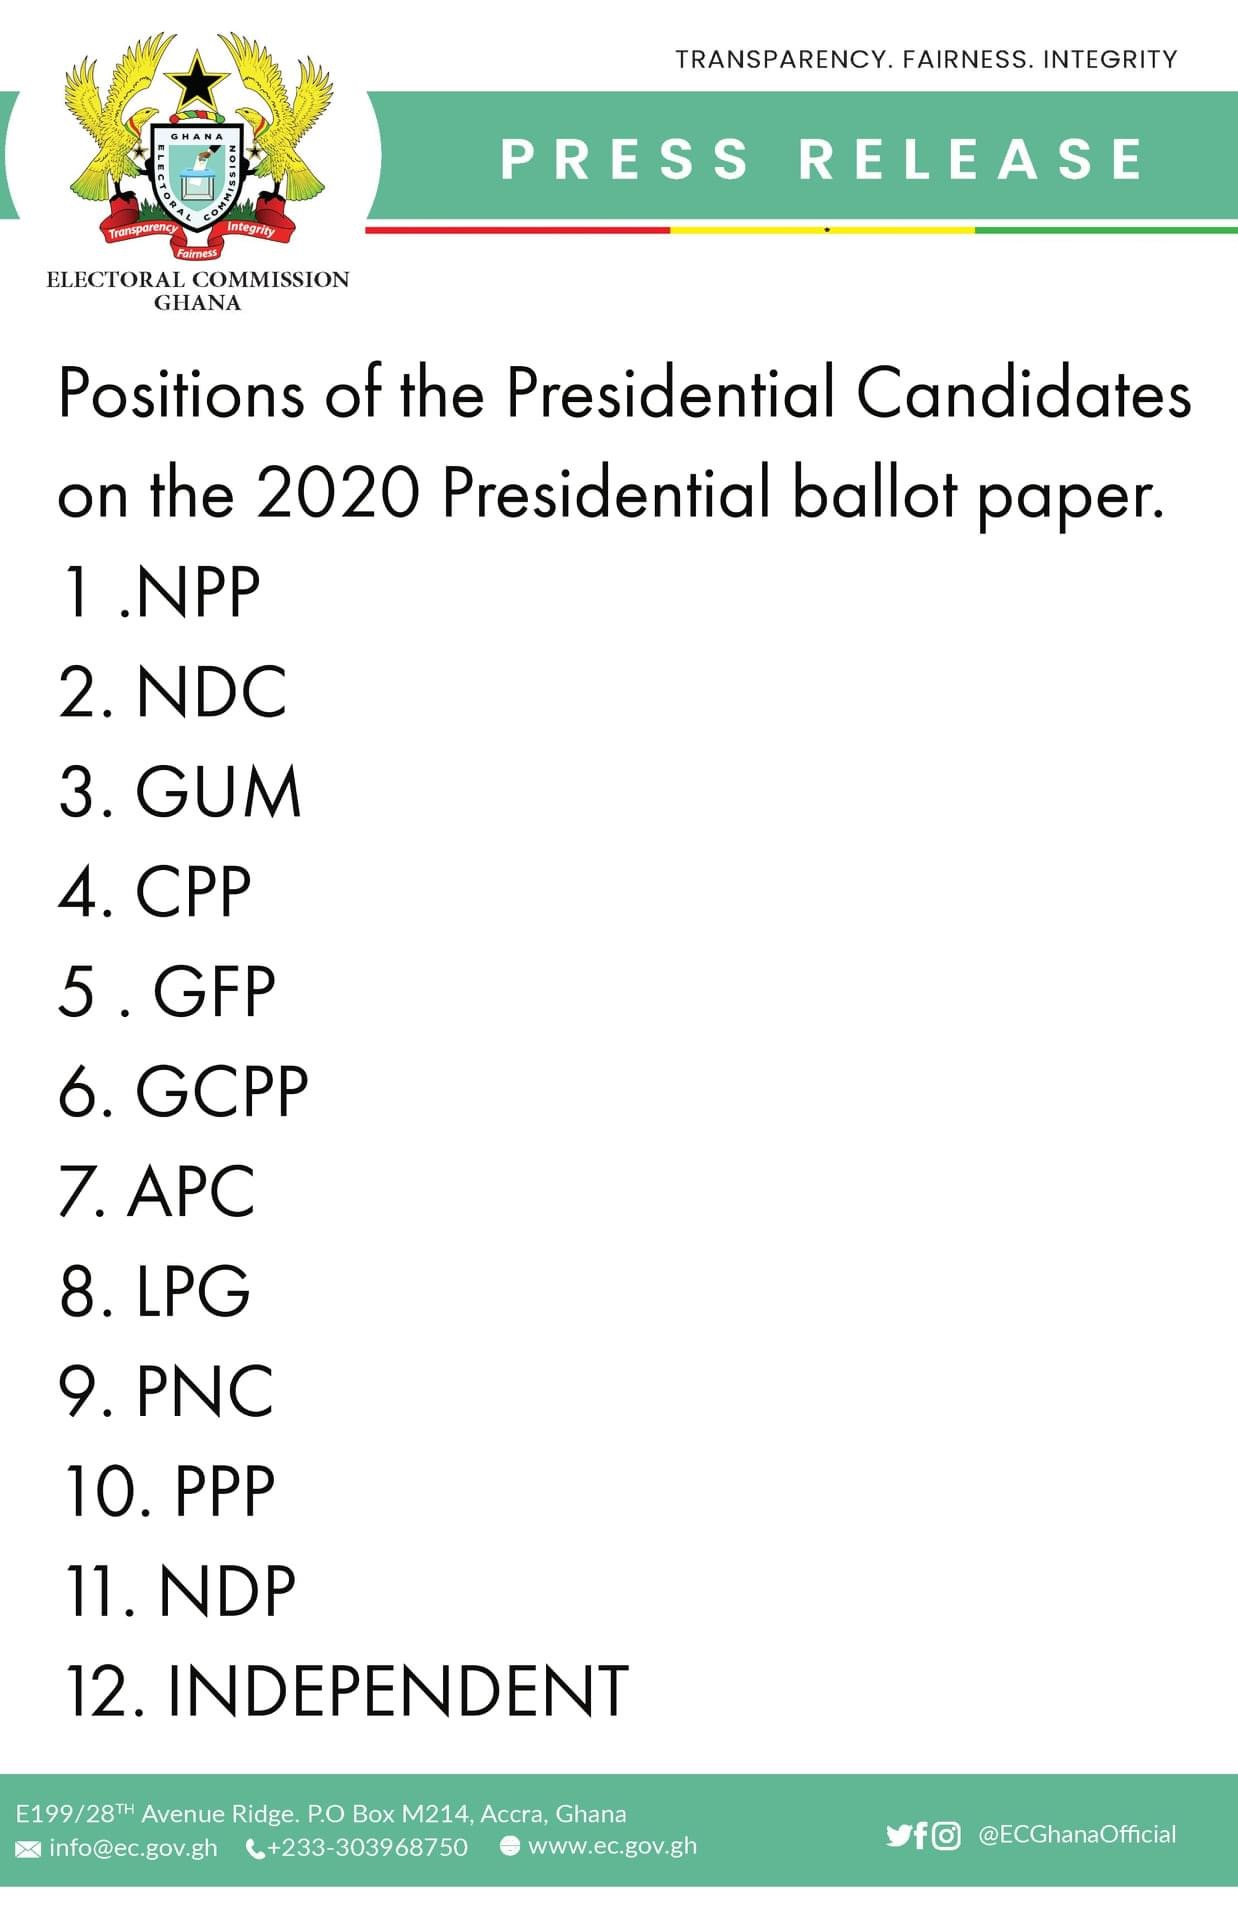 Positions of the Presidential Candidates on the 2020 Presidential ballot paper